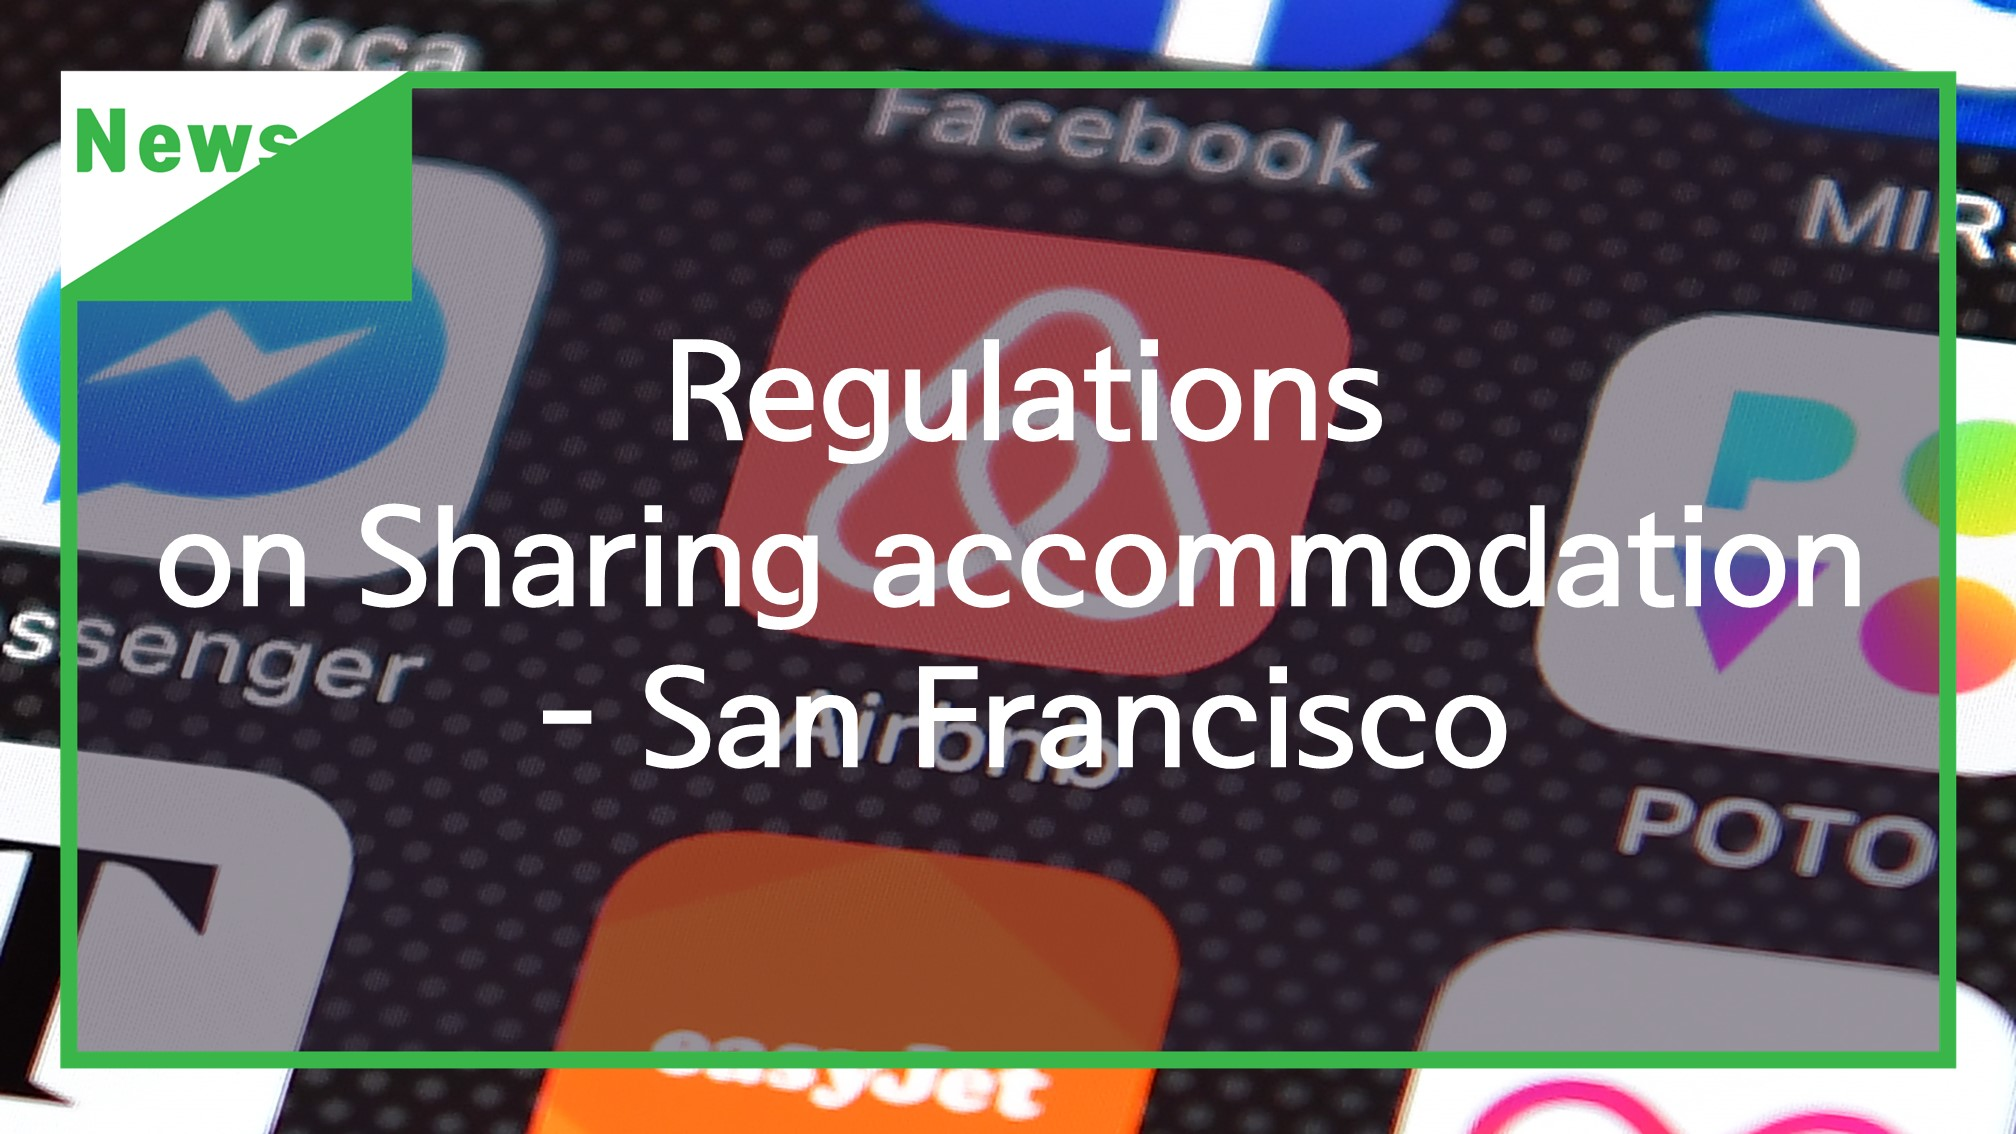 [News] Regulations on Sharing accommodation  - San Francisco